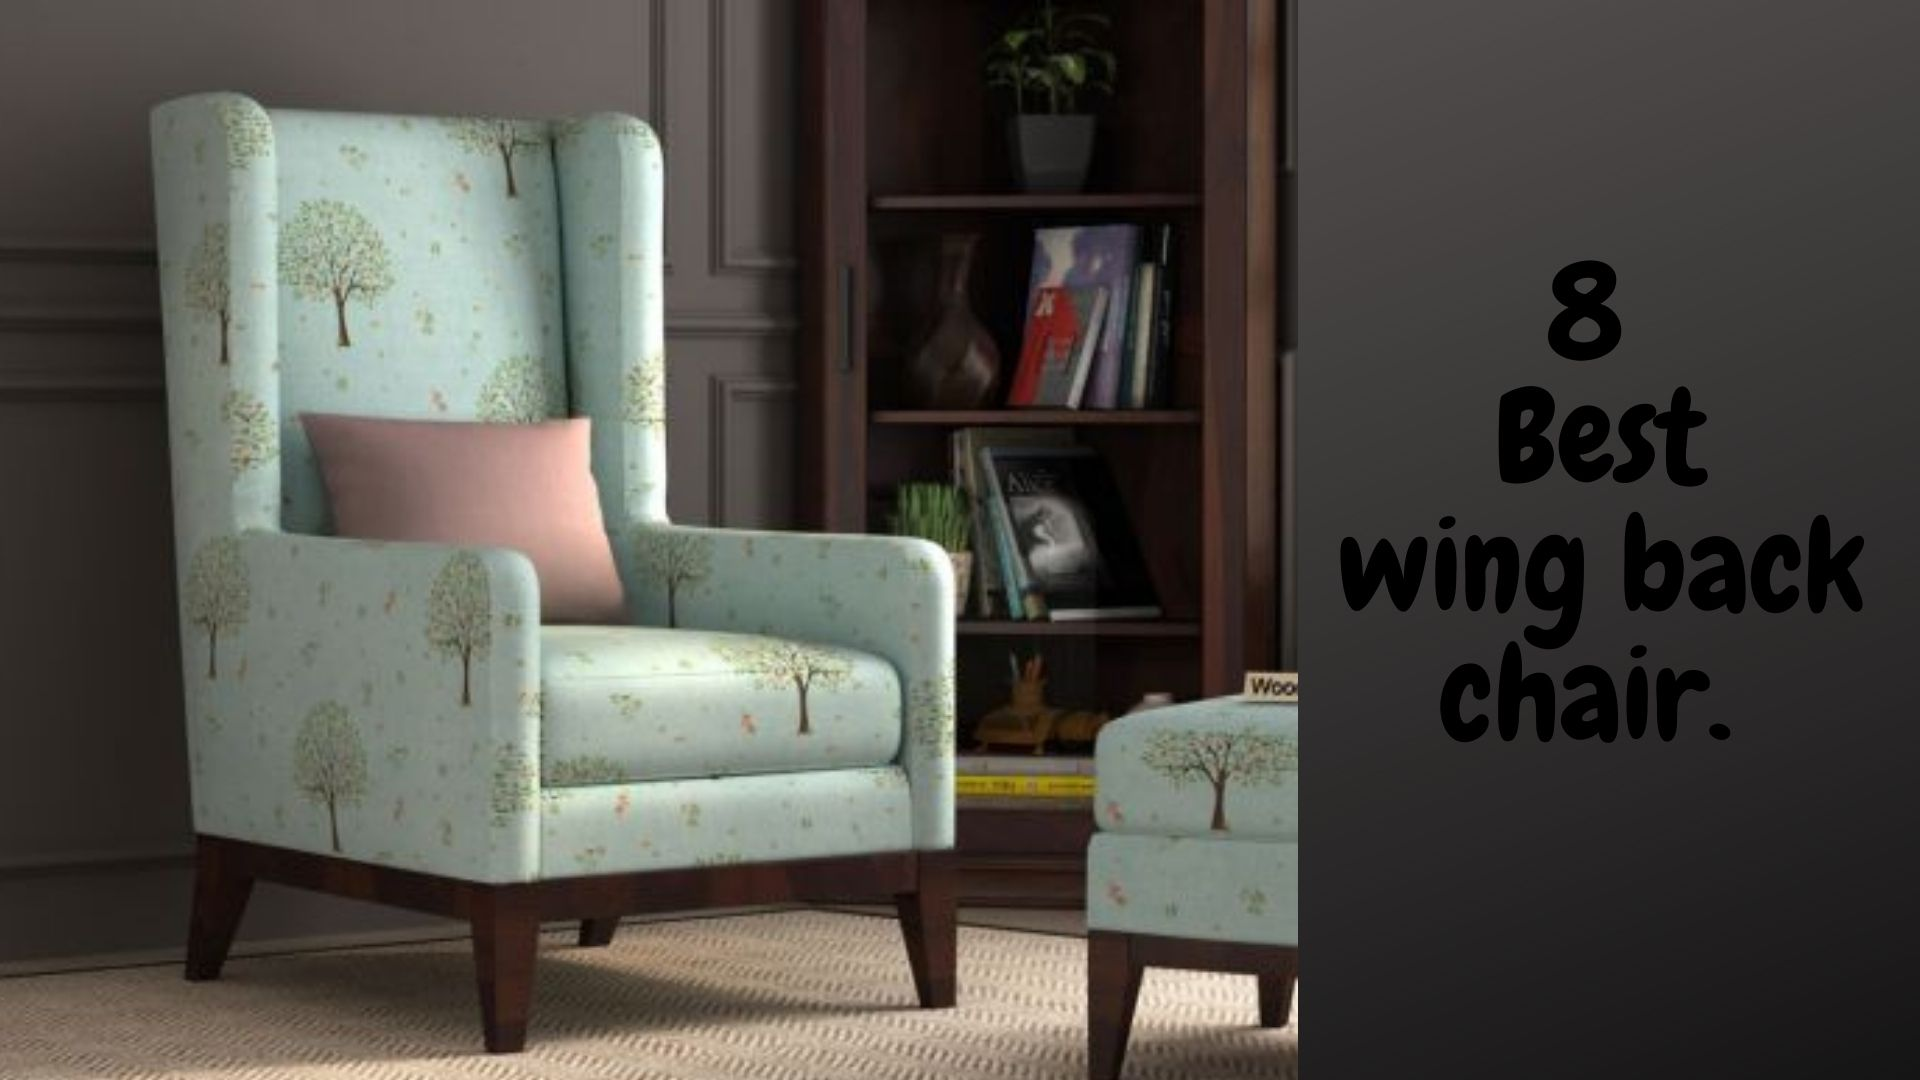 Best 8 wing back chair